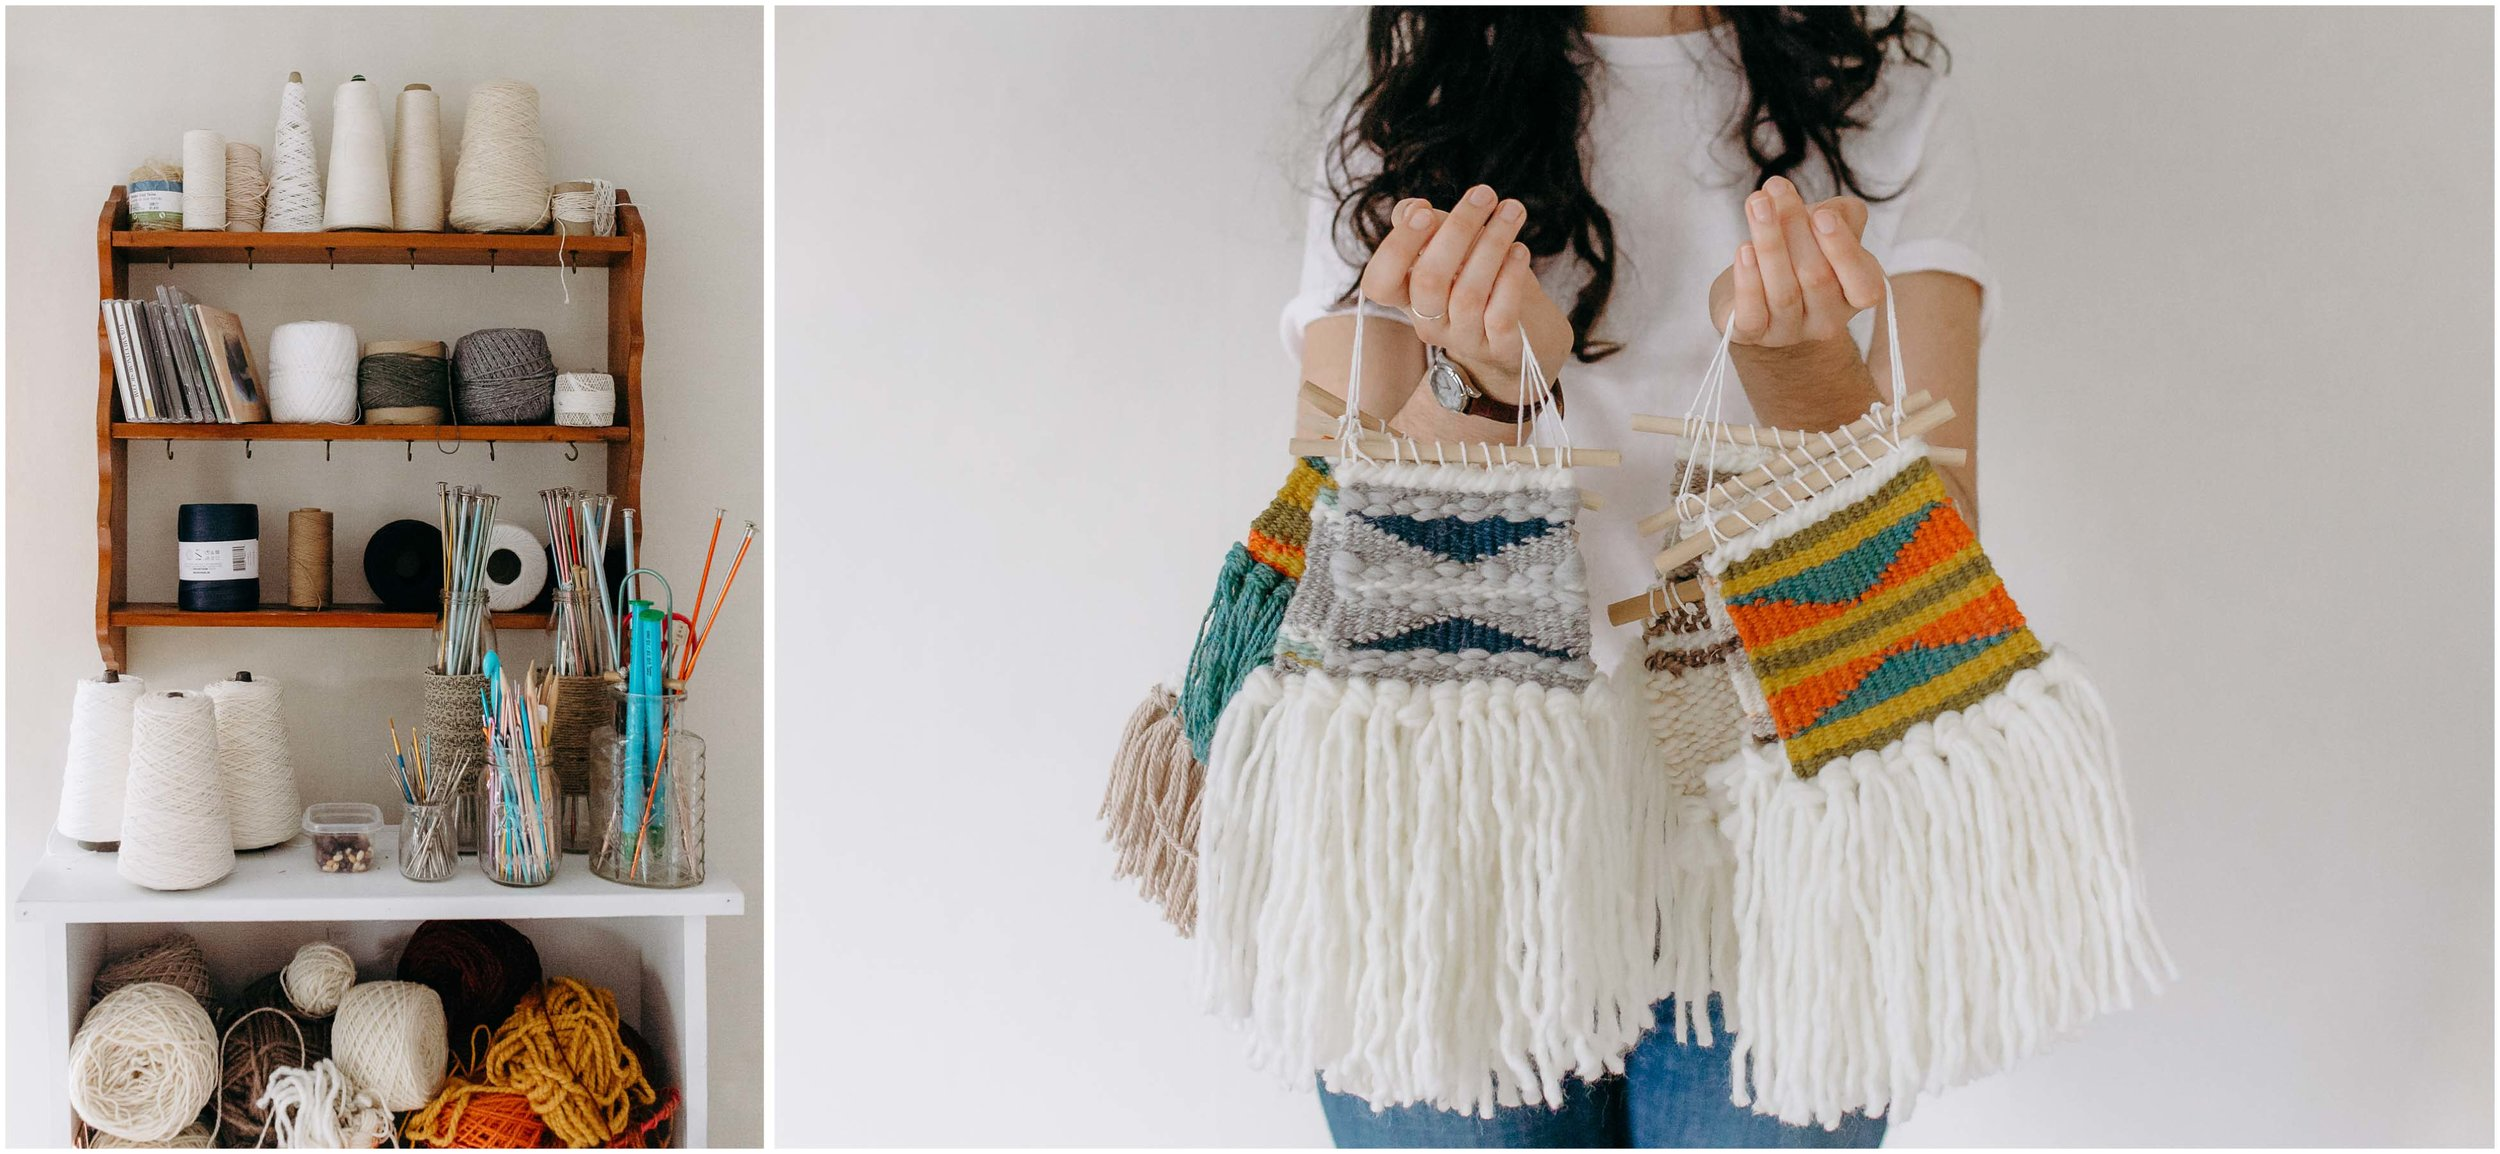 Melody Fulone Fiber Artist, Goffstown, New Hampshire Lifestyle Photographer, weaving